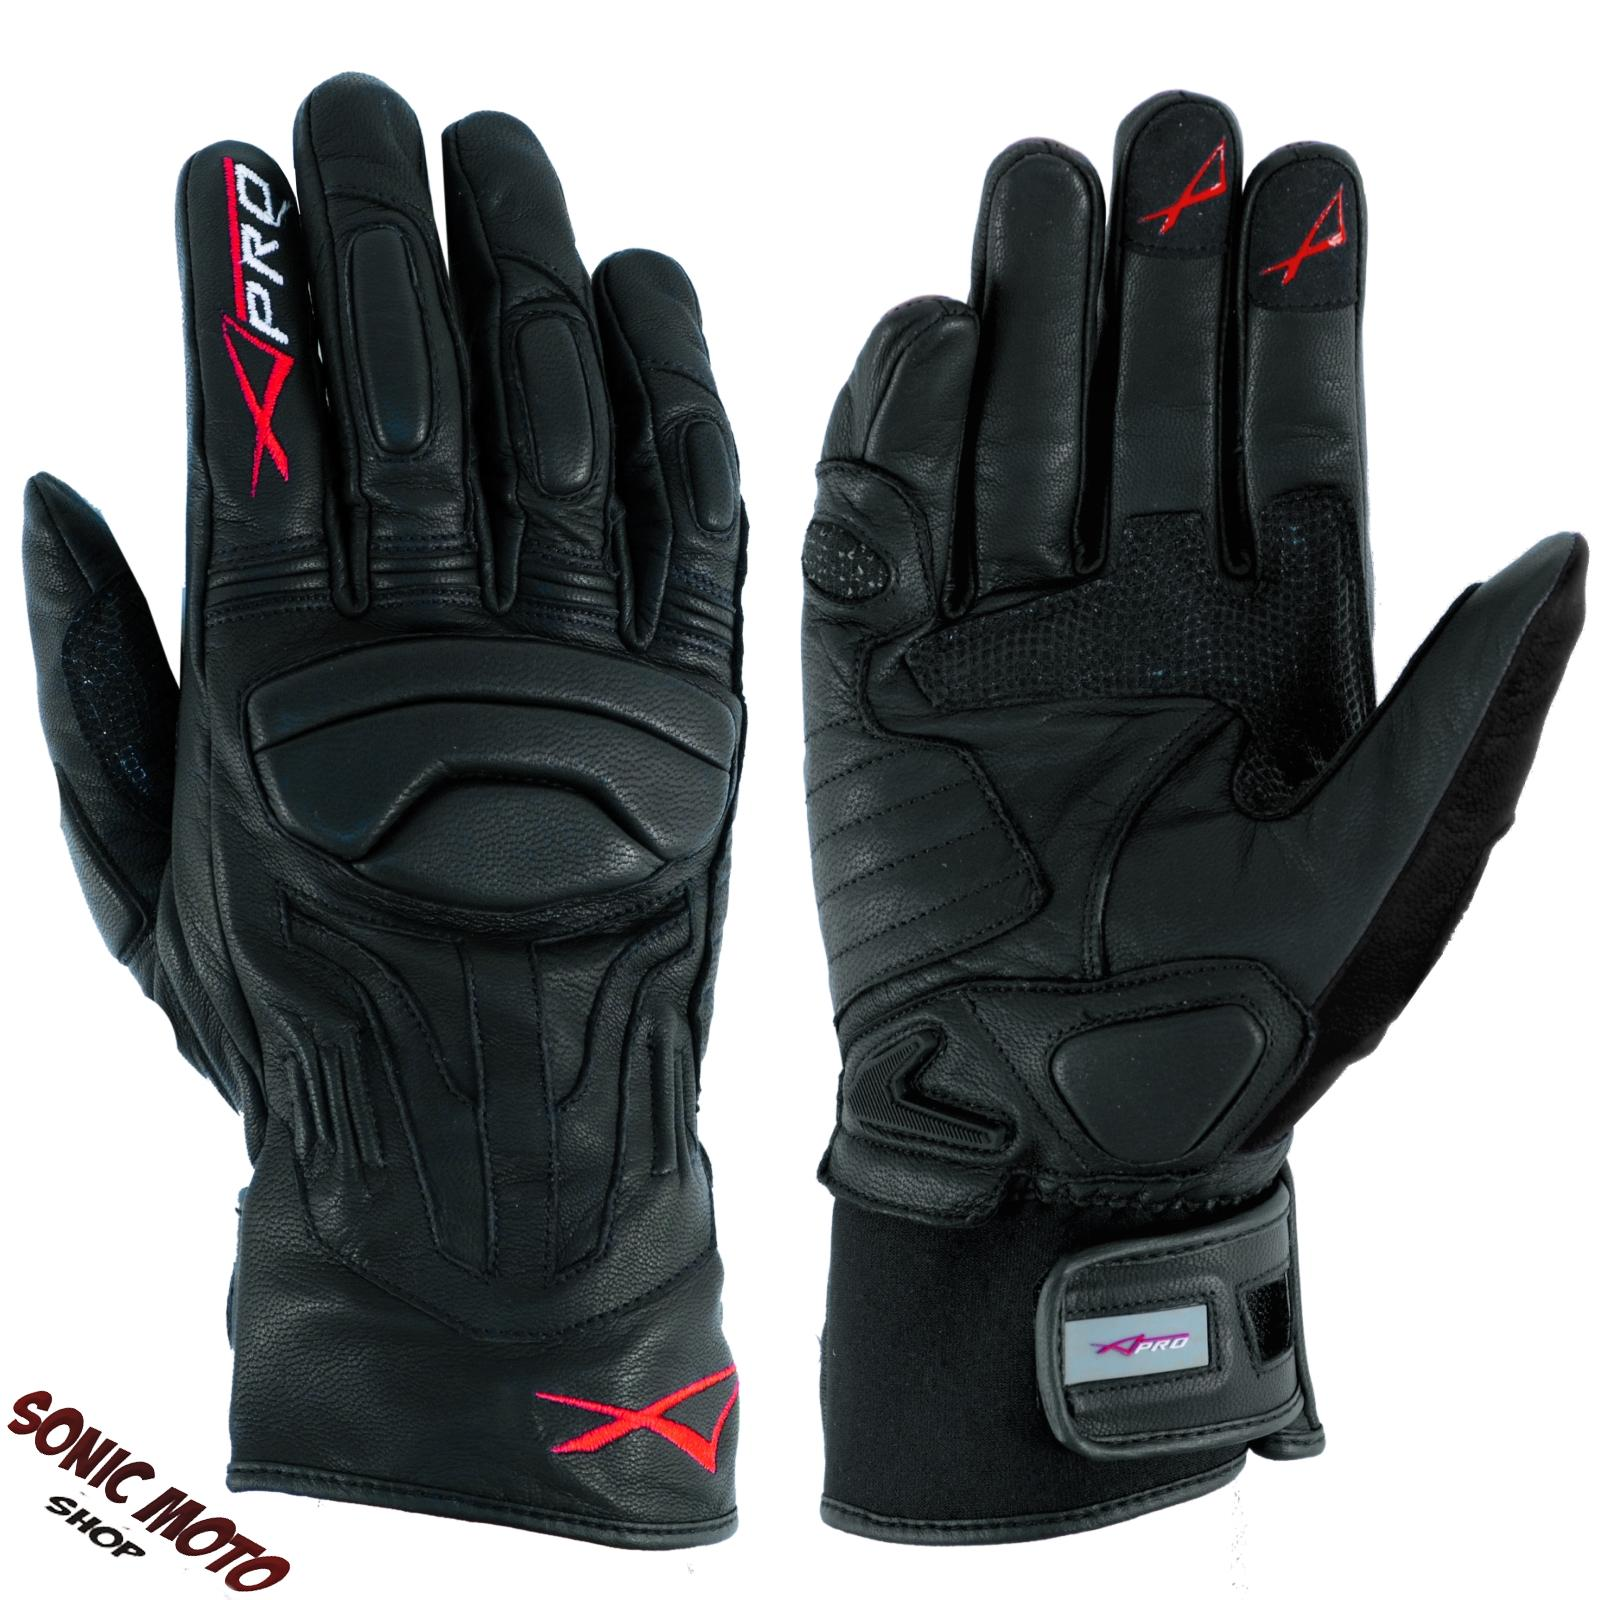 Summer leather sport Padded Gloves Scooter Motorcycle Apparel Bikers